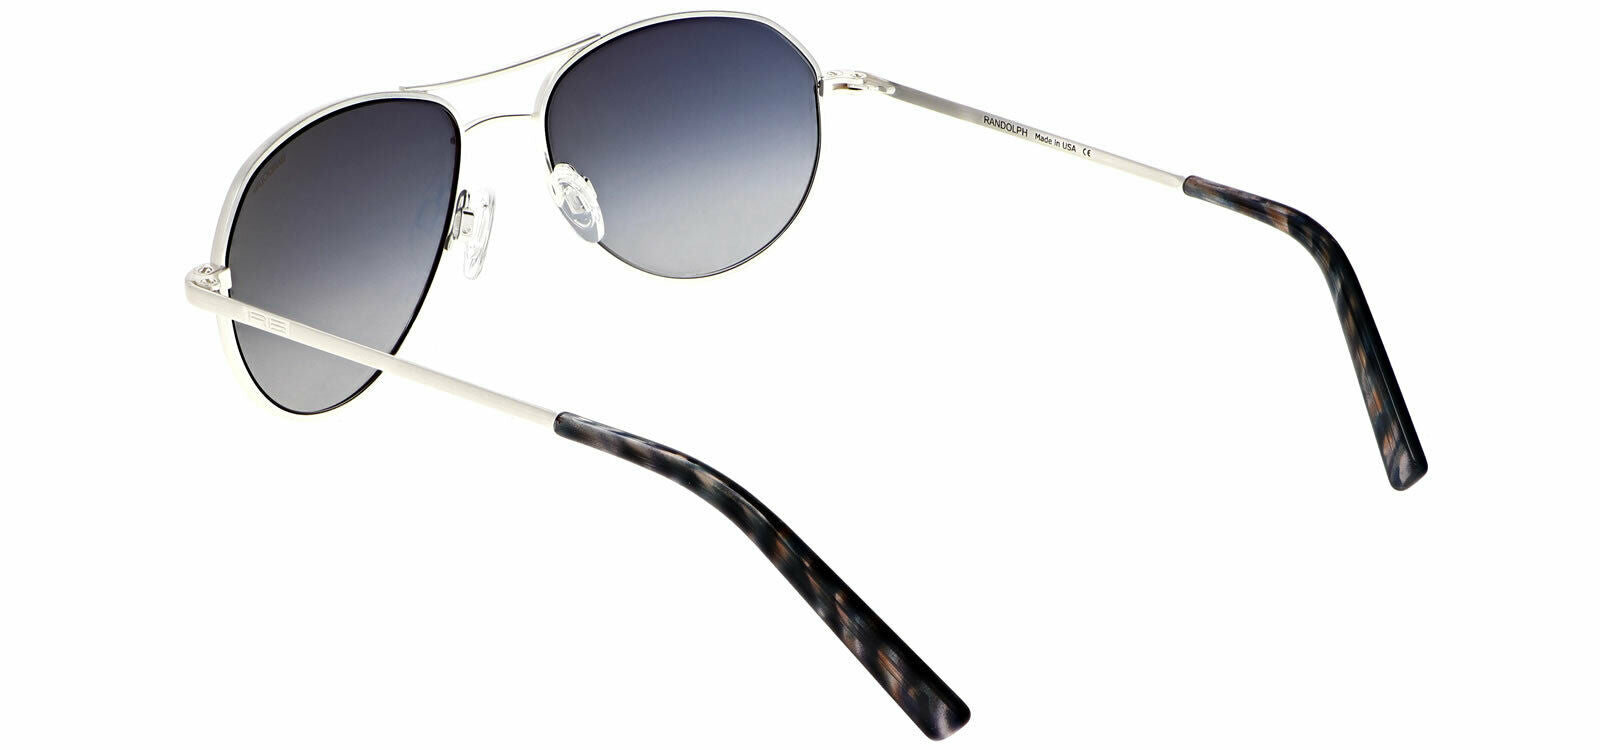 Thaden 54mm Best Women's Aviator Sunglasses for Small Faces and All-Day Comfort